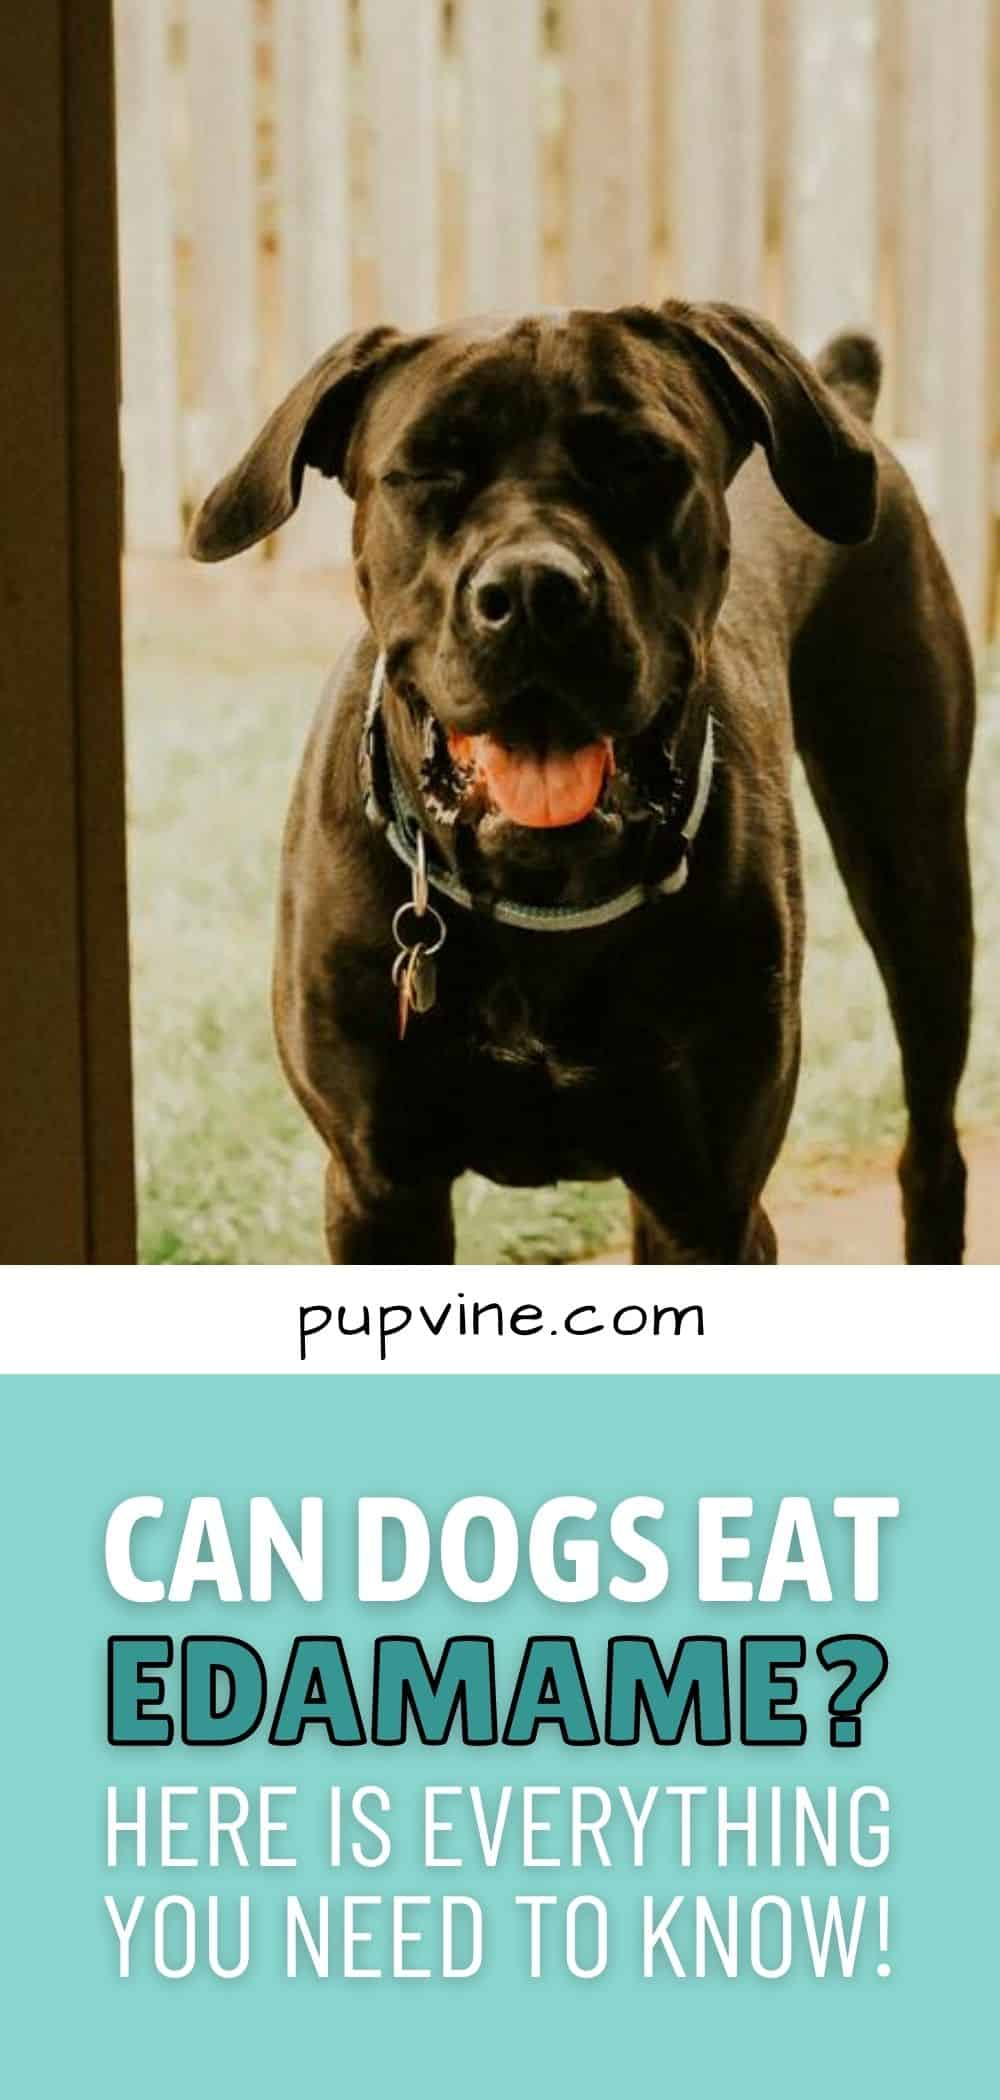 Can Dogs Eat Edamame? Here Is Everything You Need To Know!